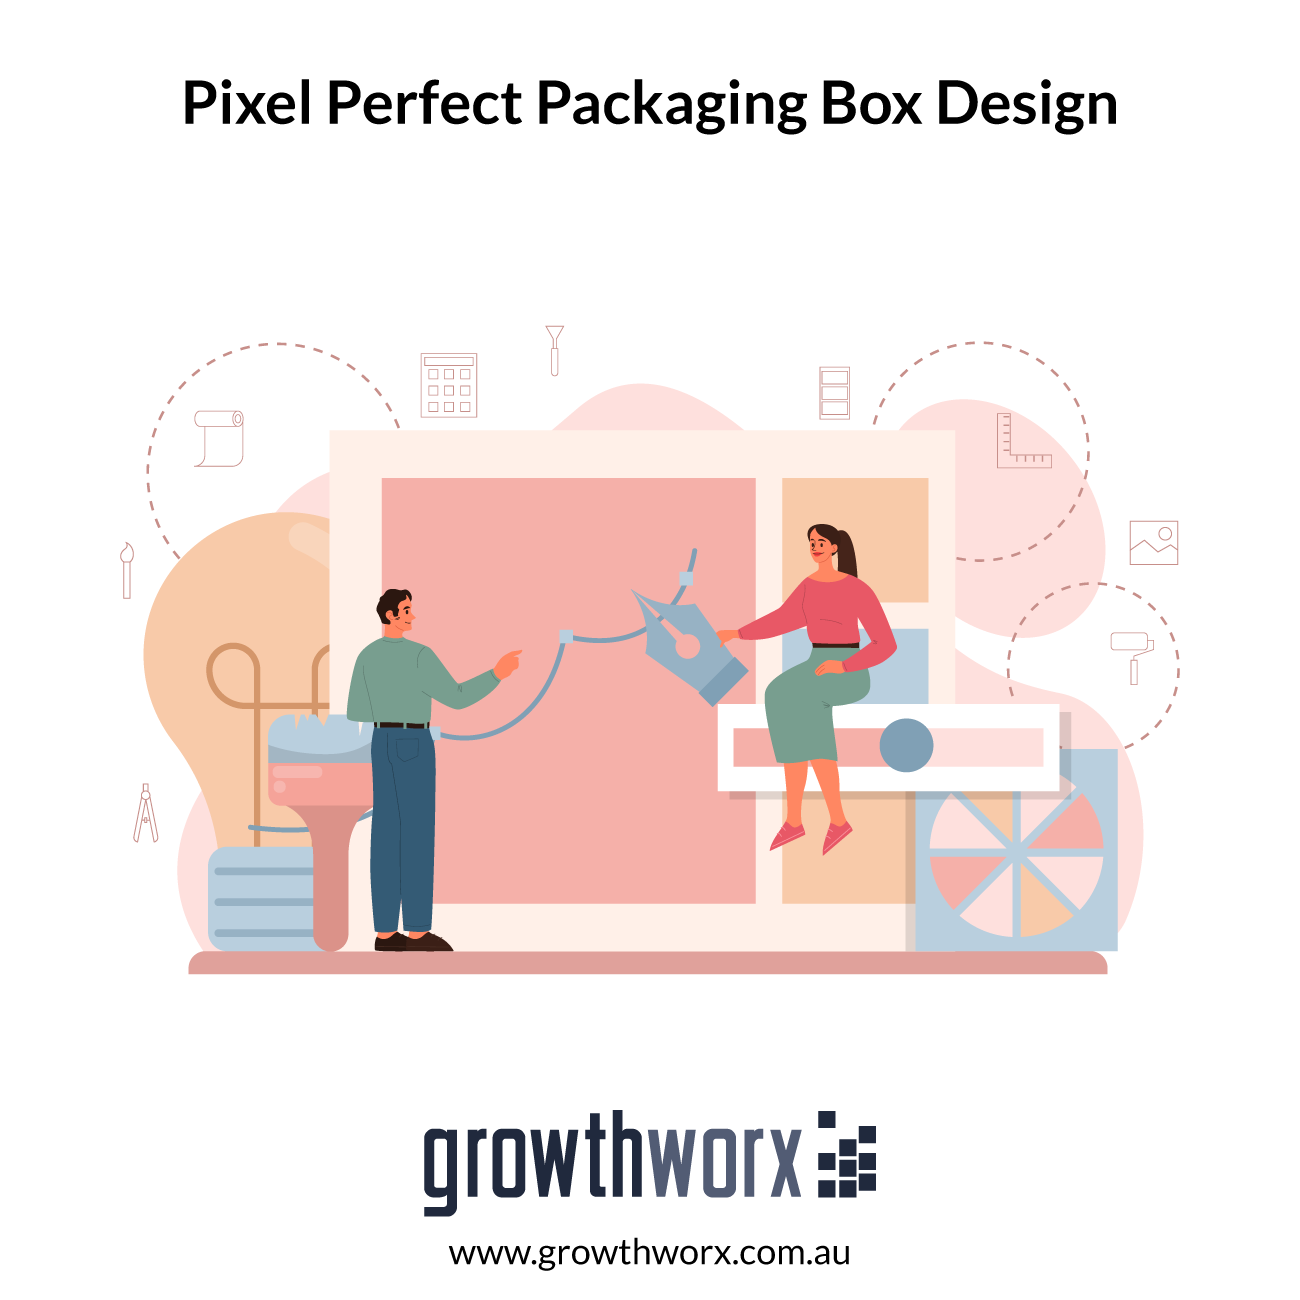 We will create a pixel perfect packaging box design with die cut 1